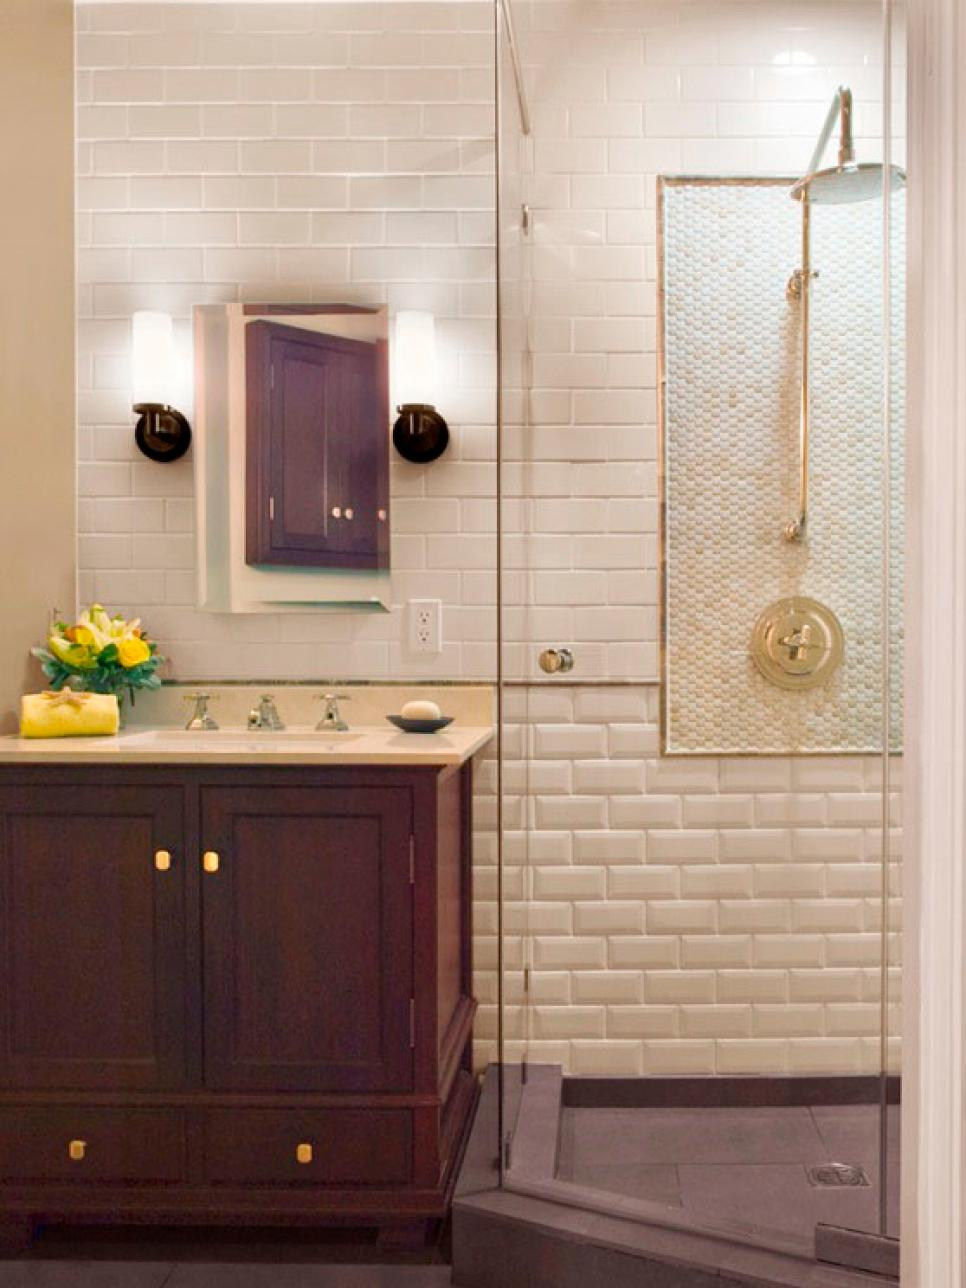 White Shower Tile Design Ideas bathroom shower designs | hgtv